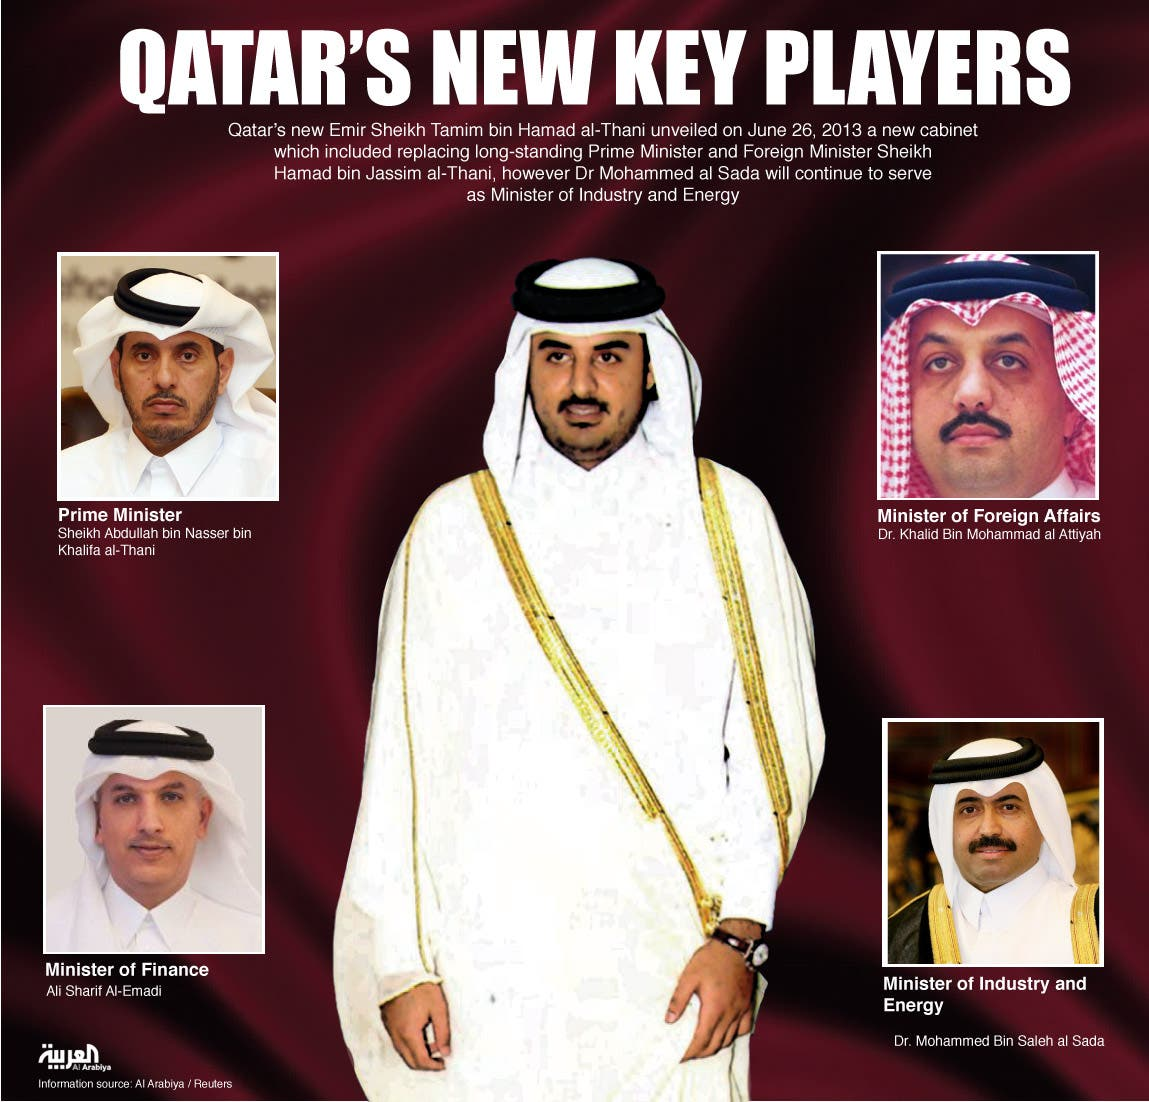 Infographic: Qatar's New key players (Design by Farwa Rizwan / Al Arabiya English)